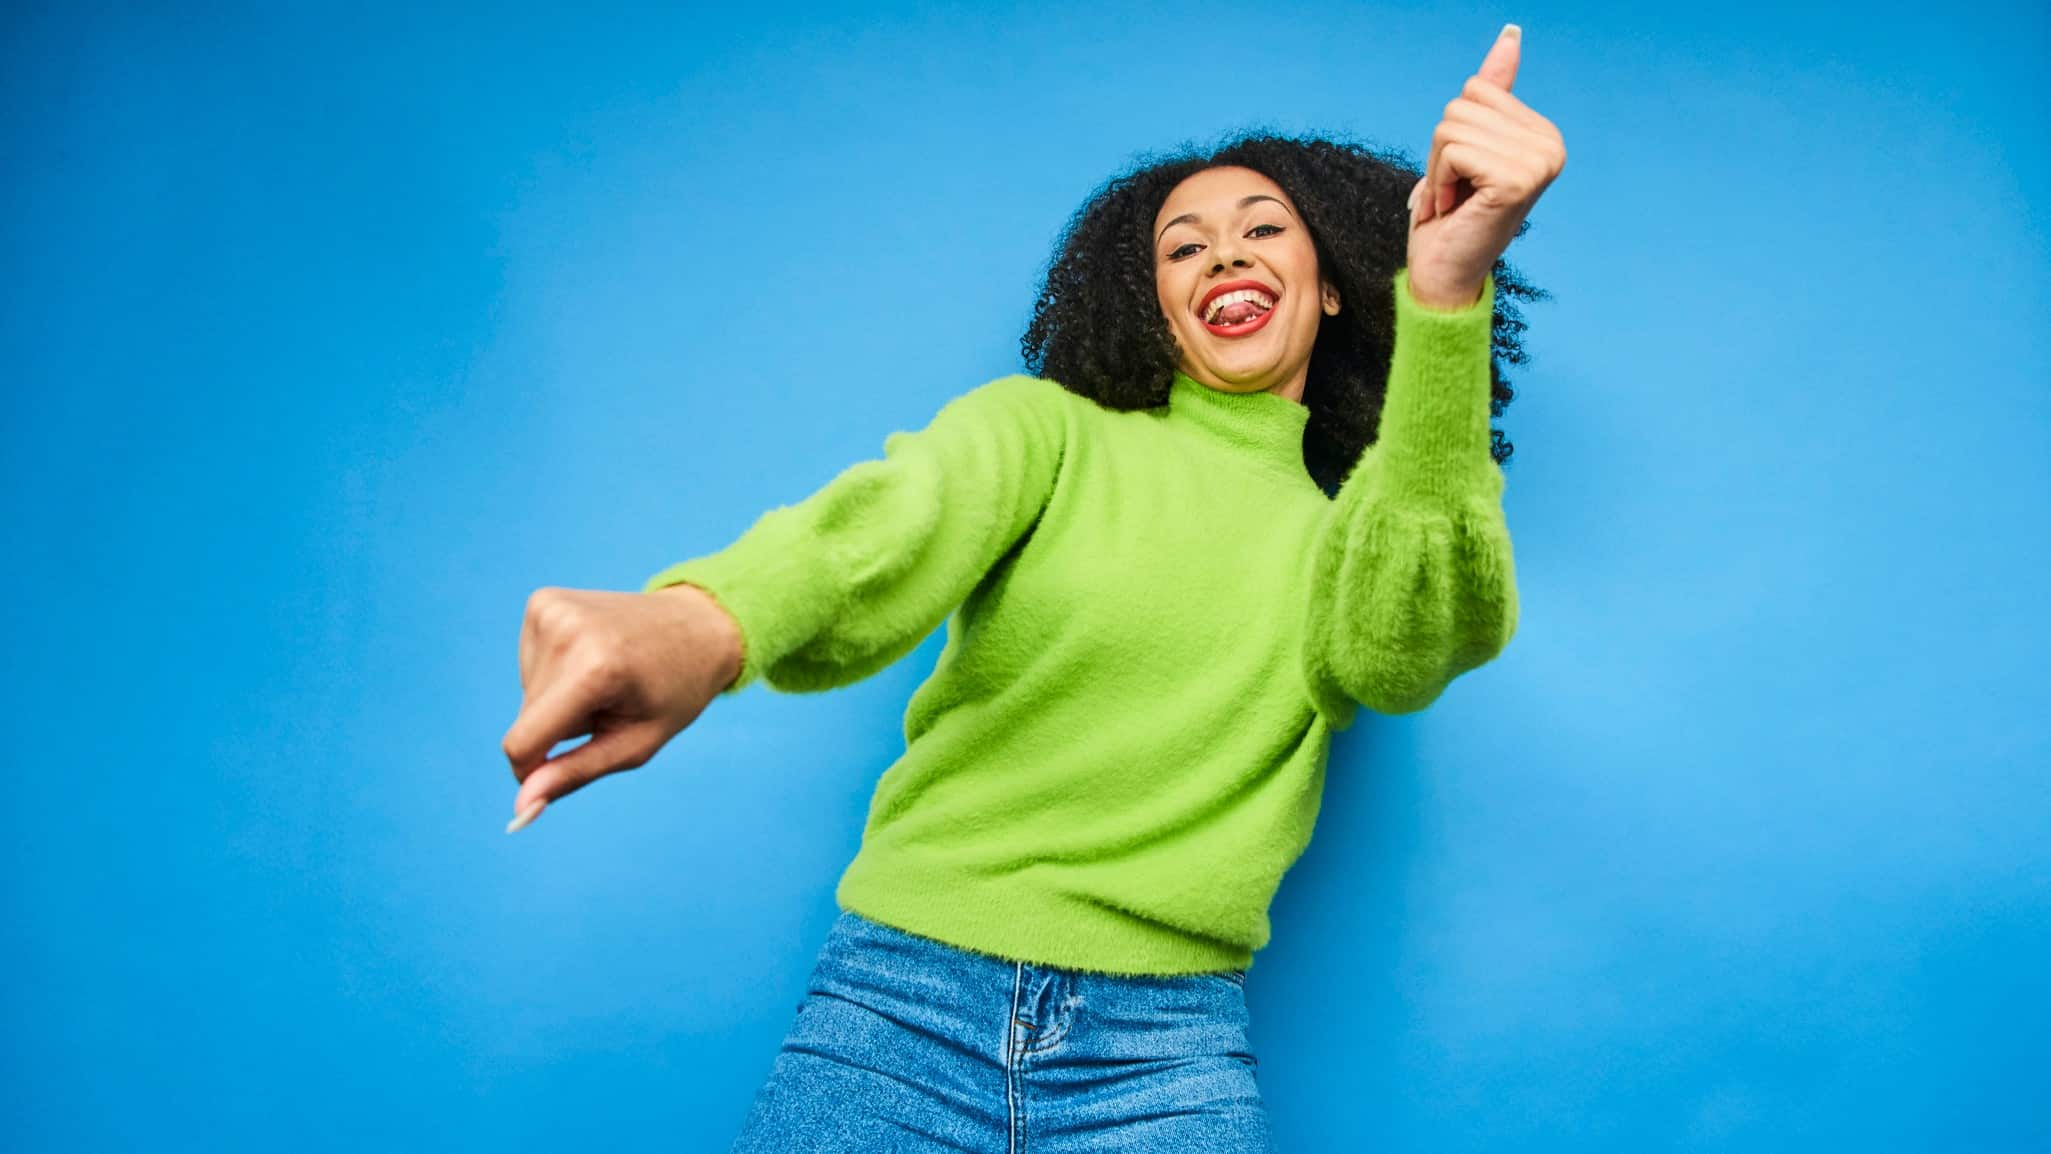 rising asx share price represented by happy woman dancing excitedly